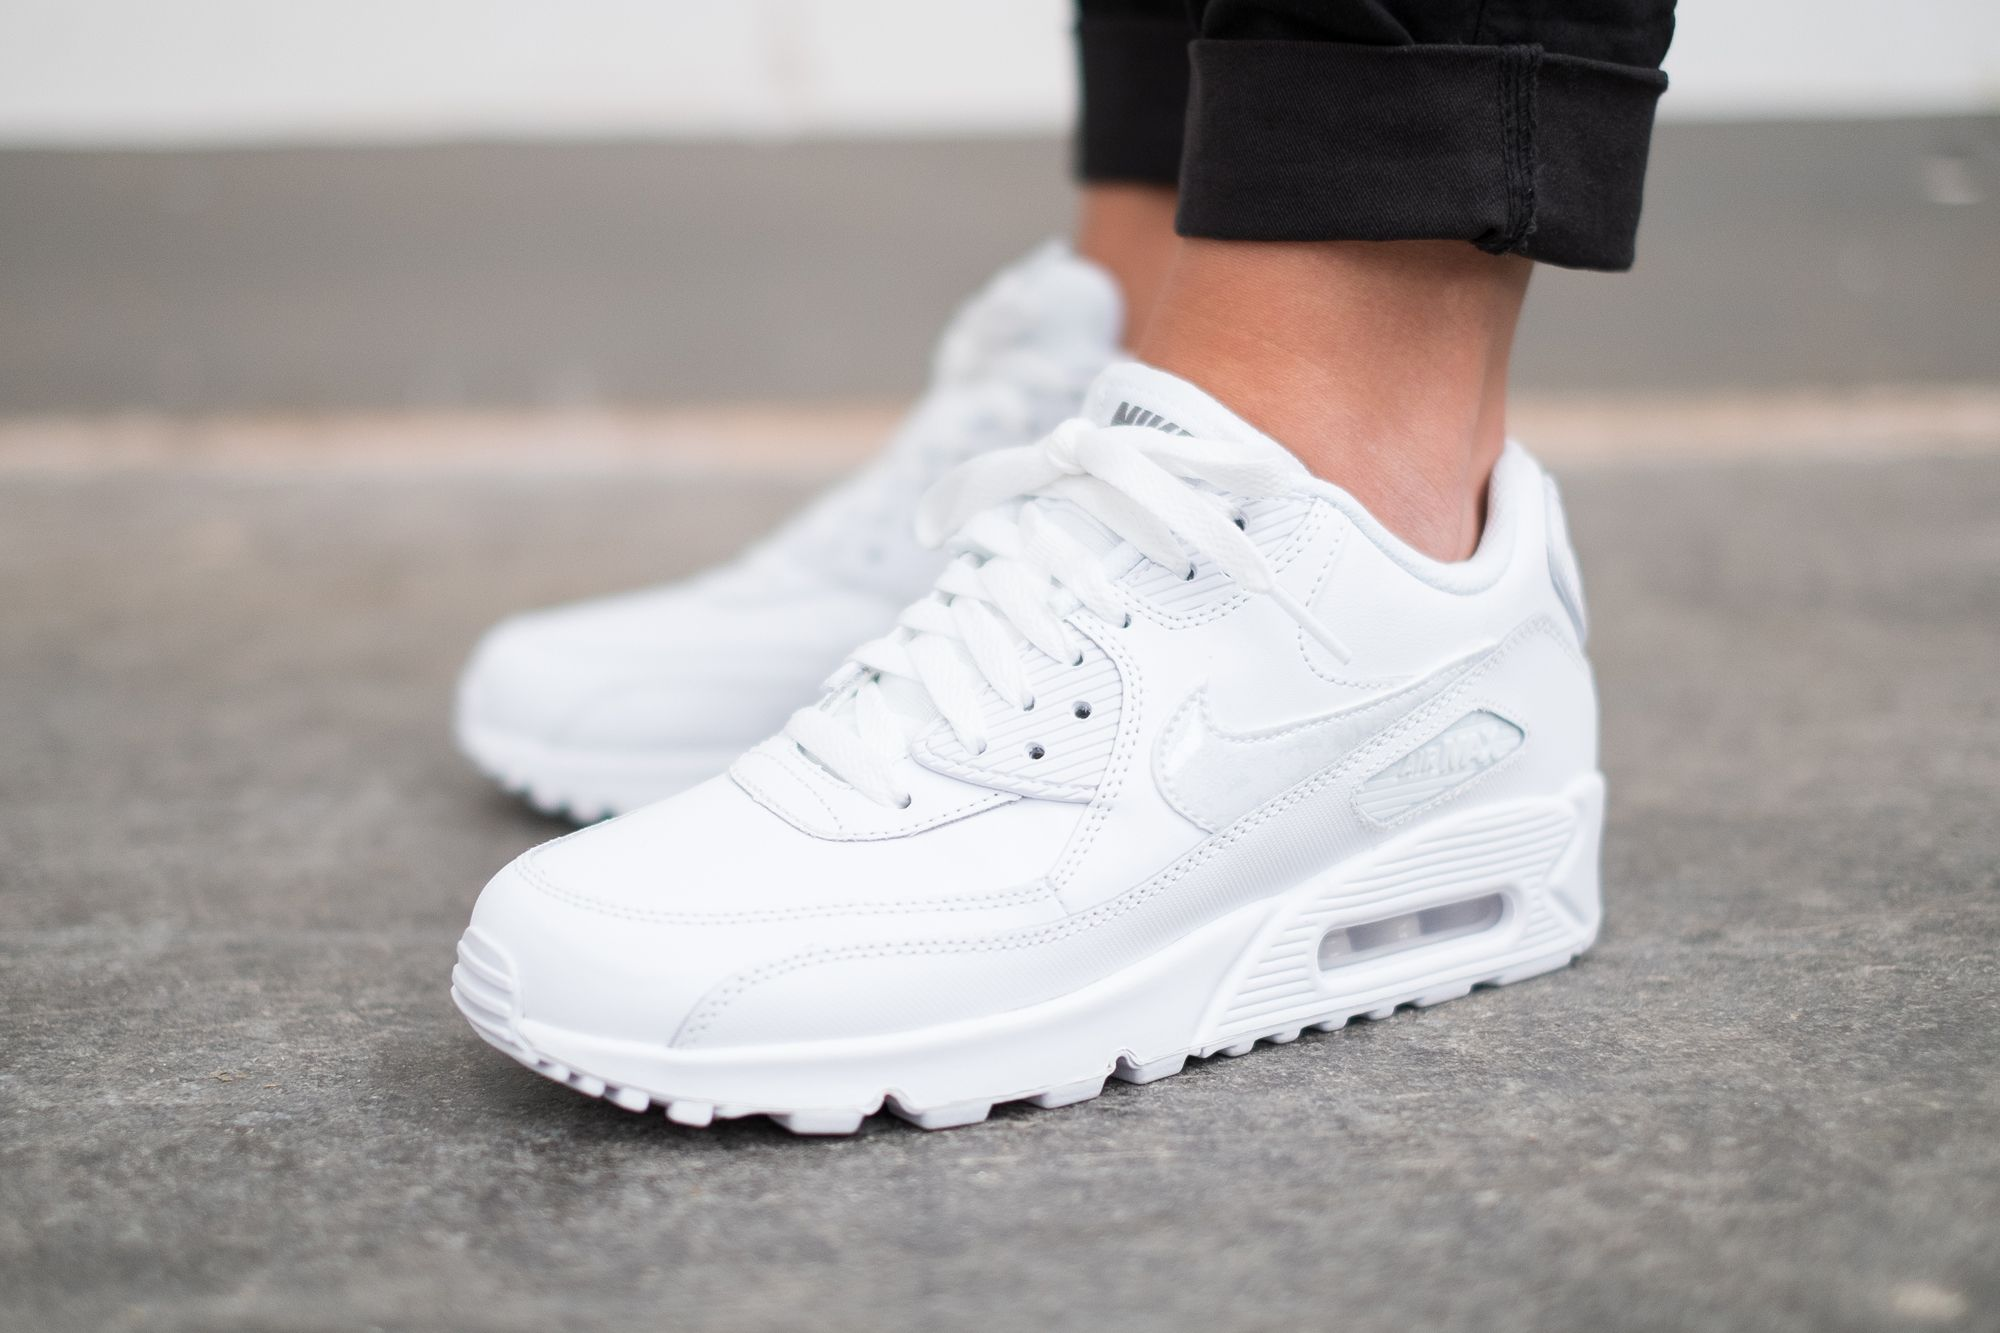 Ladies The Nike Air Max 90 Leather Gs Is Available At Our Shop Now Eu 35 5 40 100 White Nike Shoes Nike Shoes Women White Nike Shoes Womens